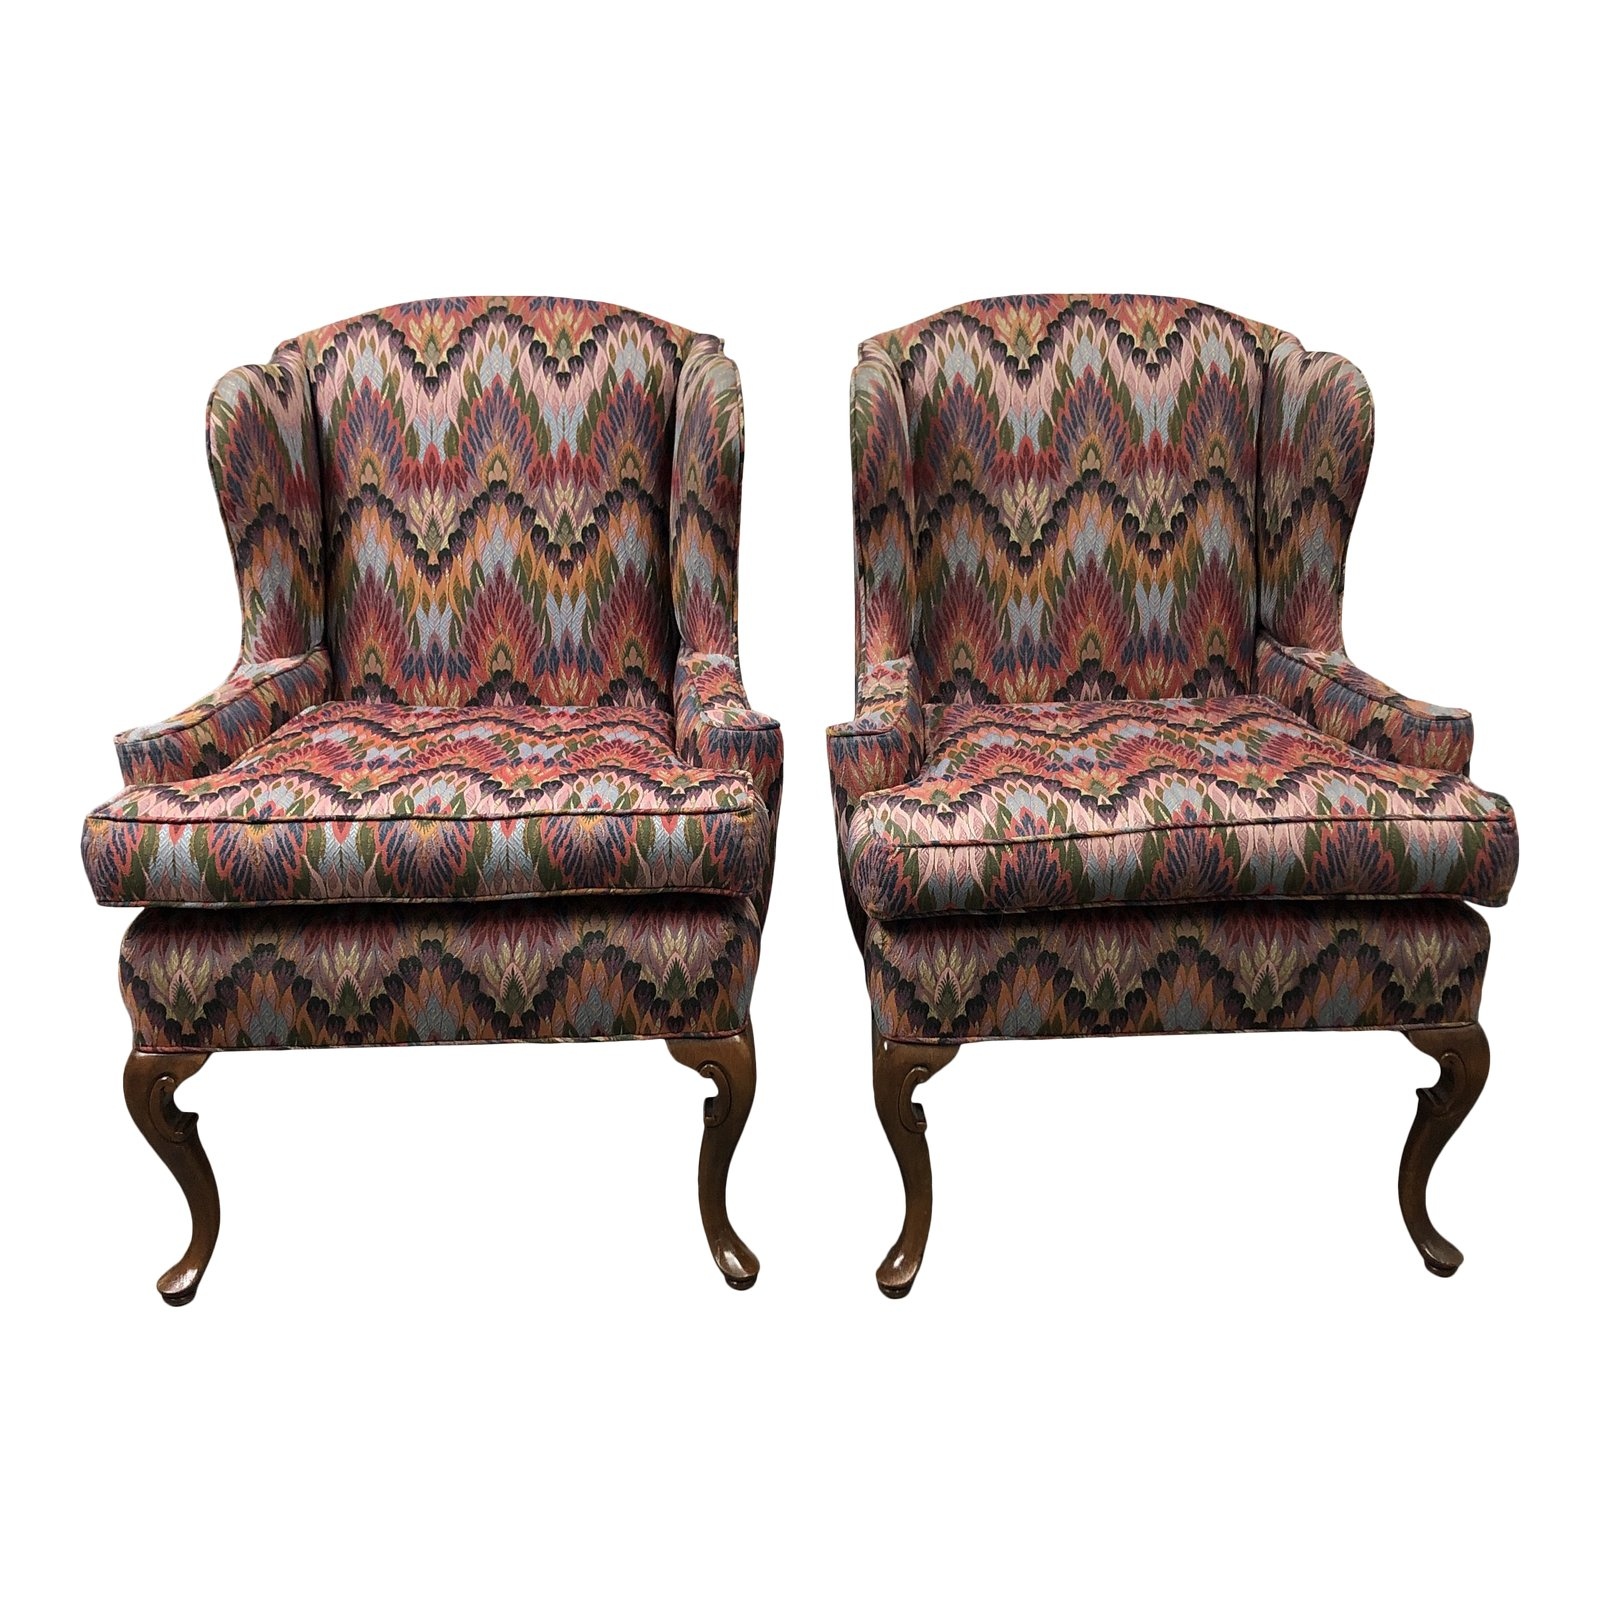 Unique Upholstered Chairs: Custom Upholstered Wingback Chairs-A Pair